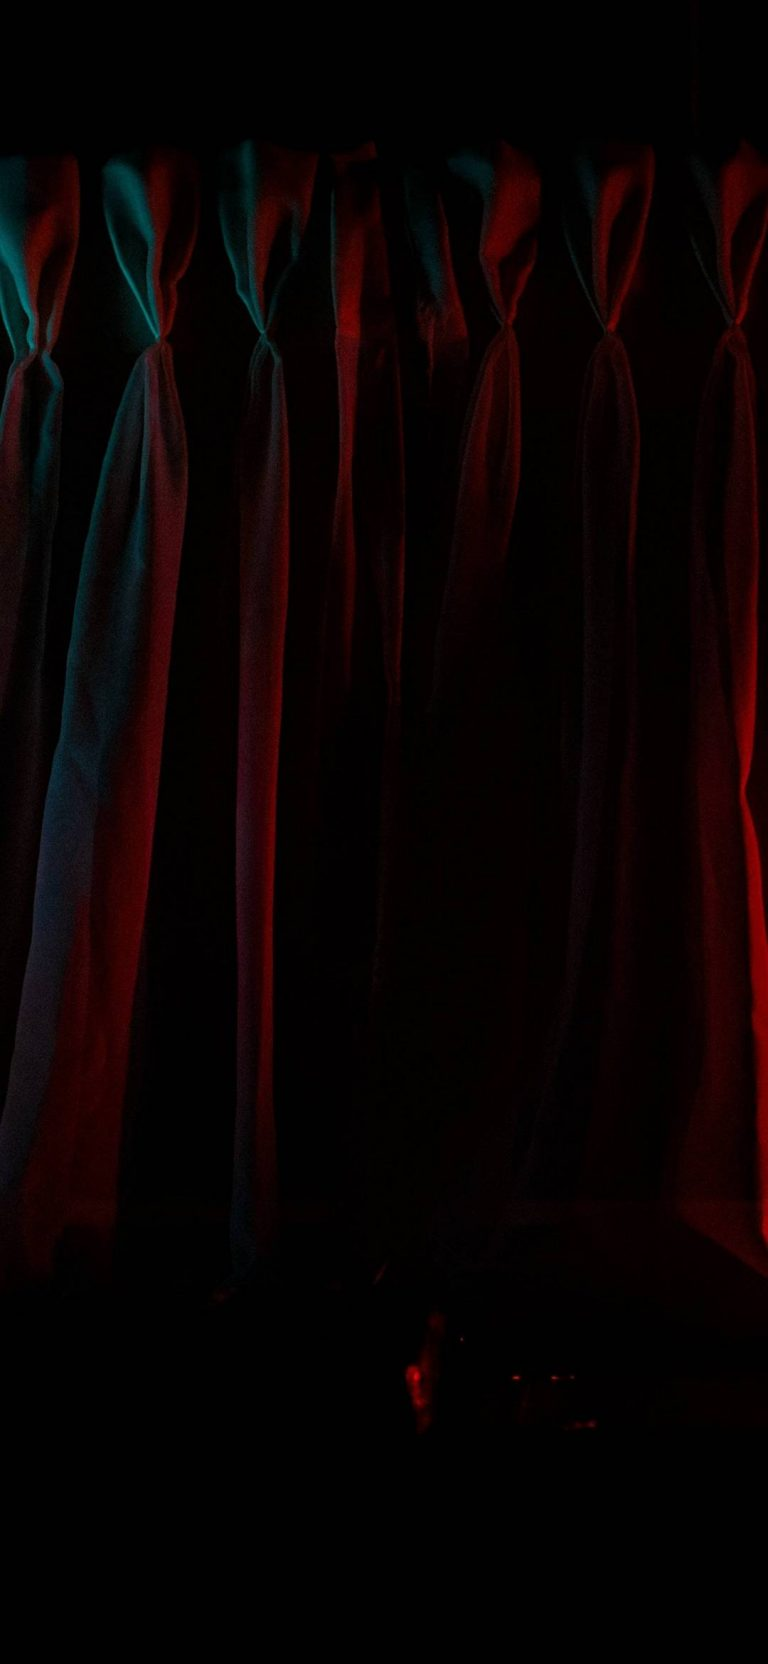 Curtains Dramatically Lit Wallpaper 1080x2340 768x1664